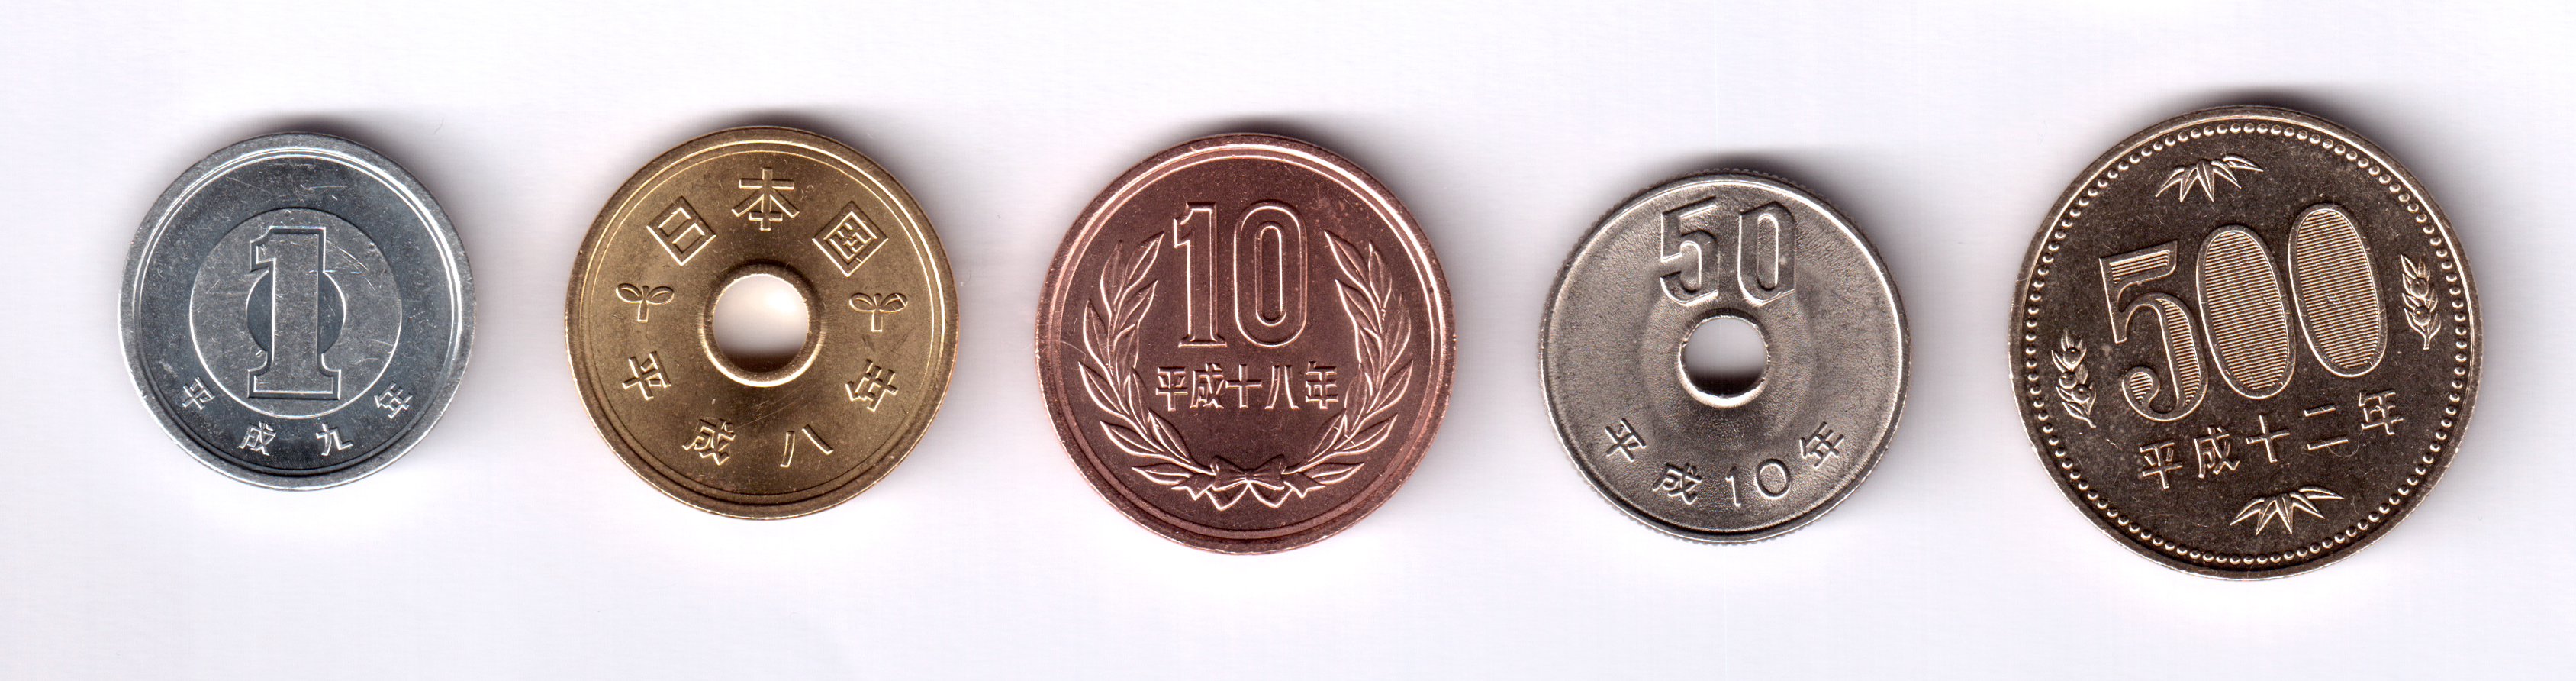 worksheet Yen Coins japan set of 5 coins 1996 2006 yen coin ebay 1 1997 y 95 2 96 10 97 50 1998 101 500 2000 125 condition see pict